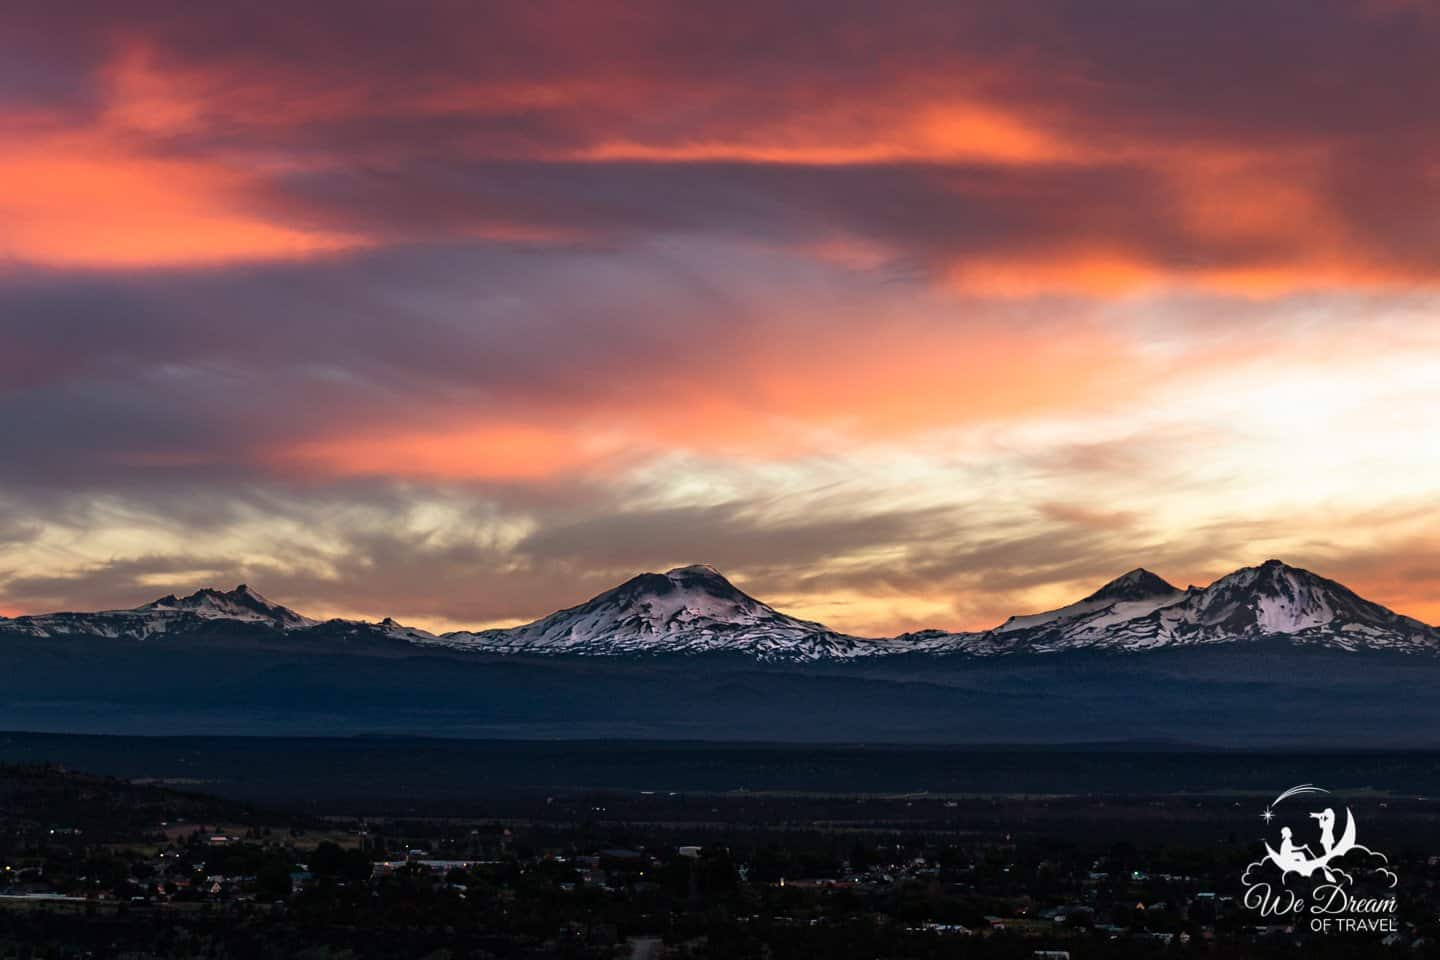 Sunset over the Three Sisters mountain on a visit to Central Oregon